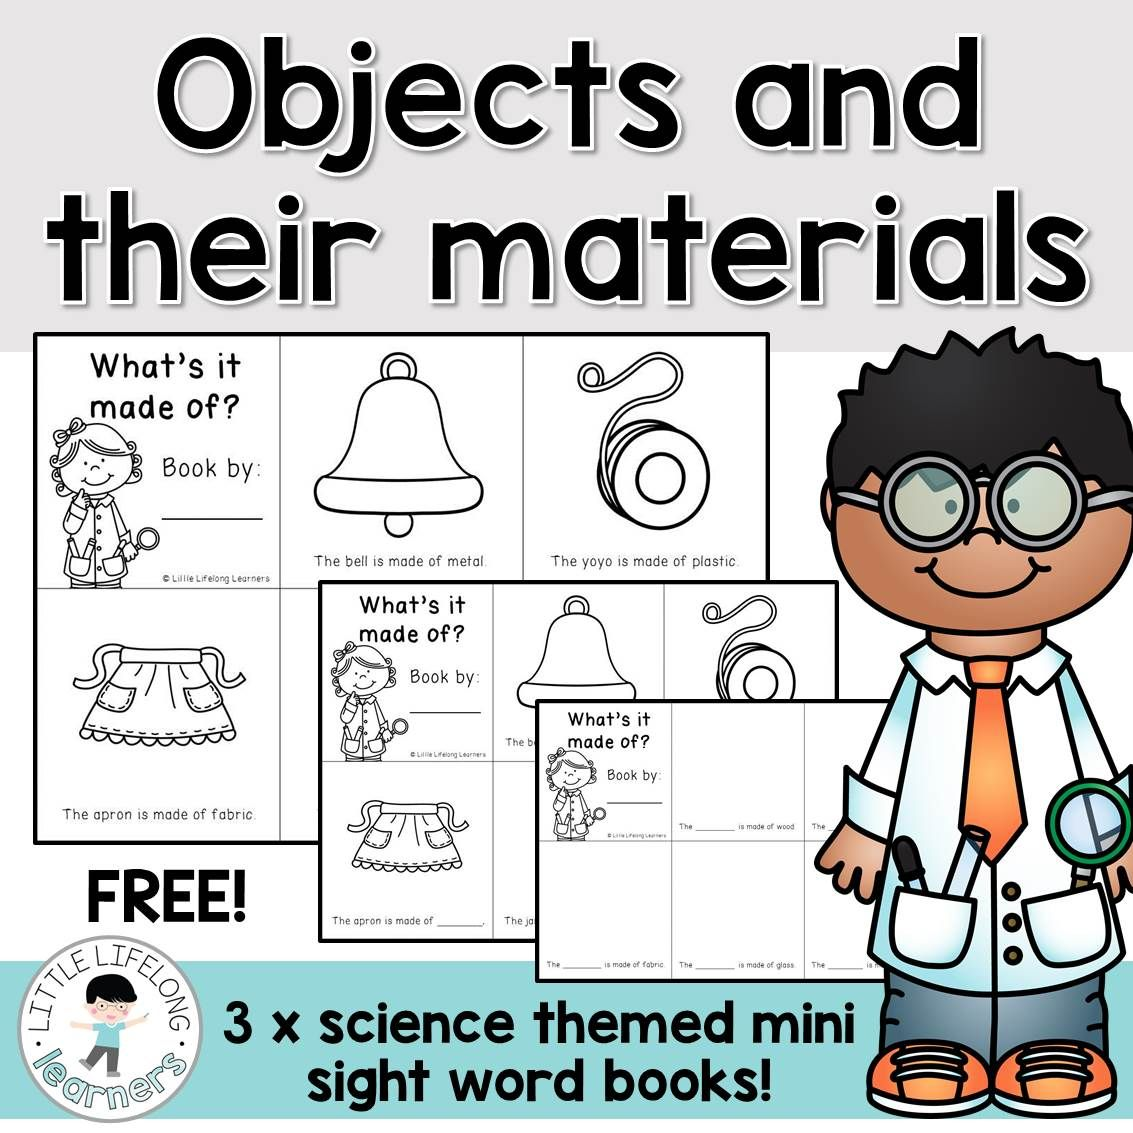 Review The Materials That Familar Objects Are Made From